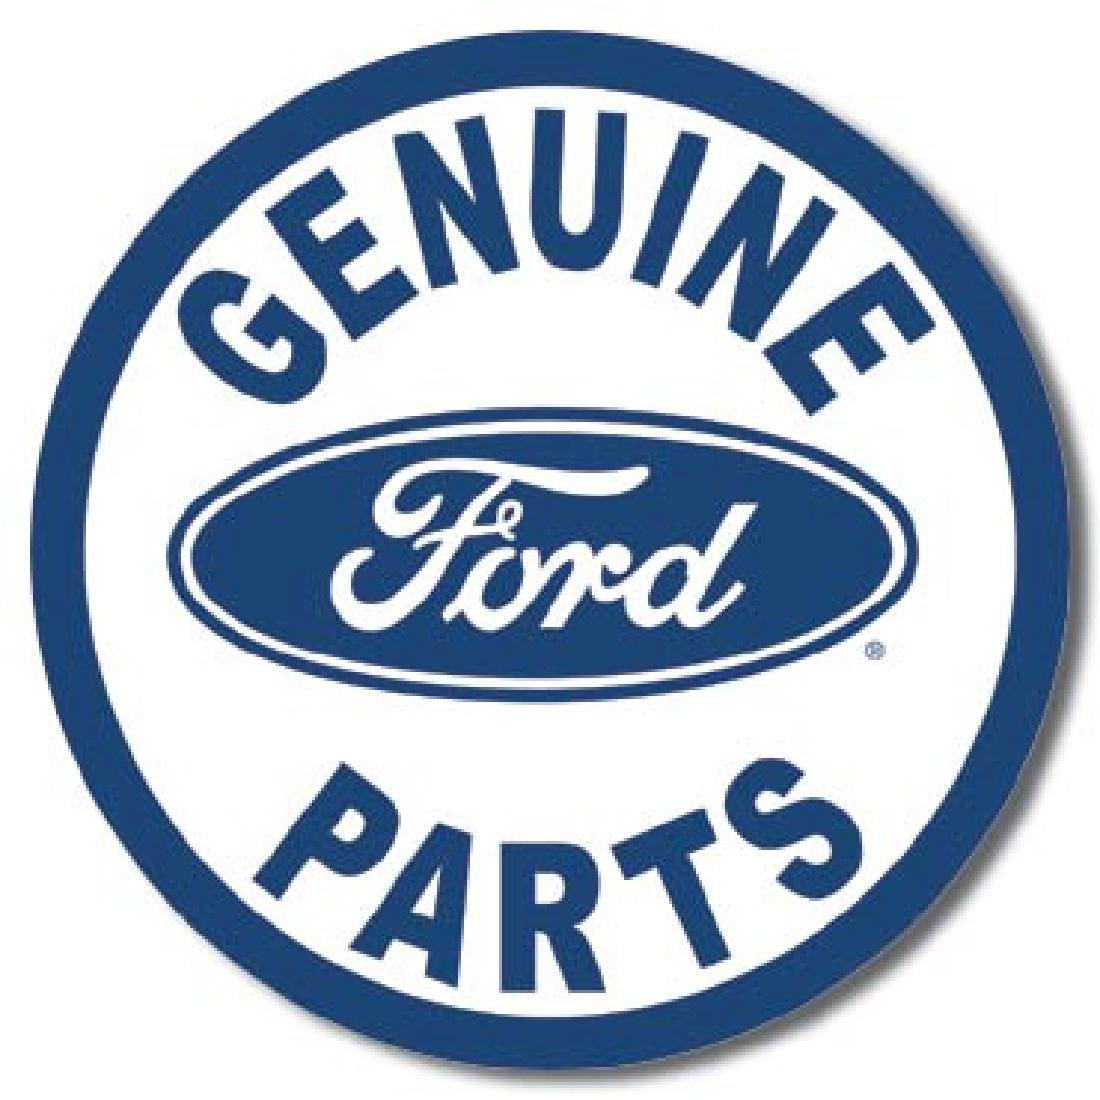 "GENUINE FORD PARTS METAL SIGN 12"" ROUND"